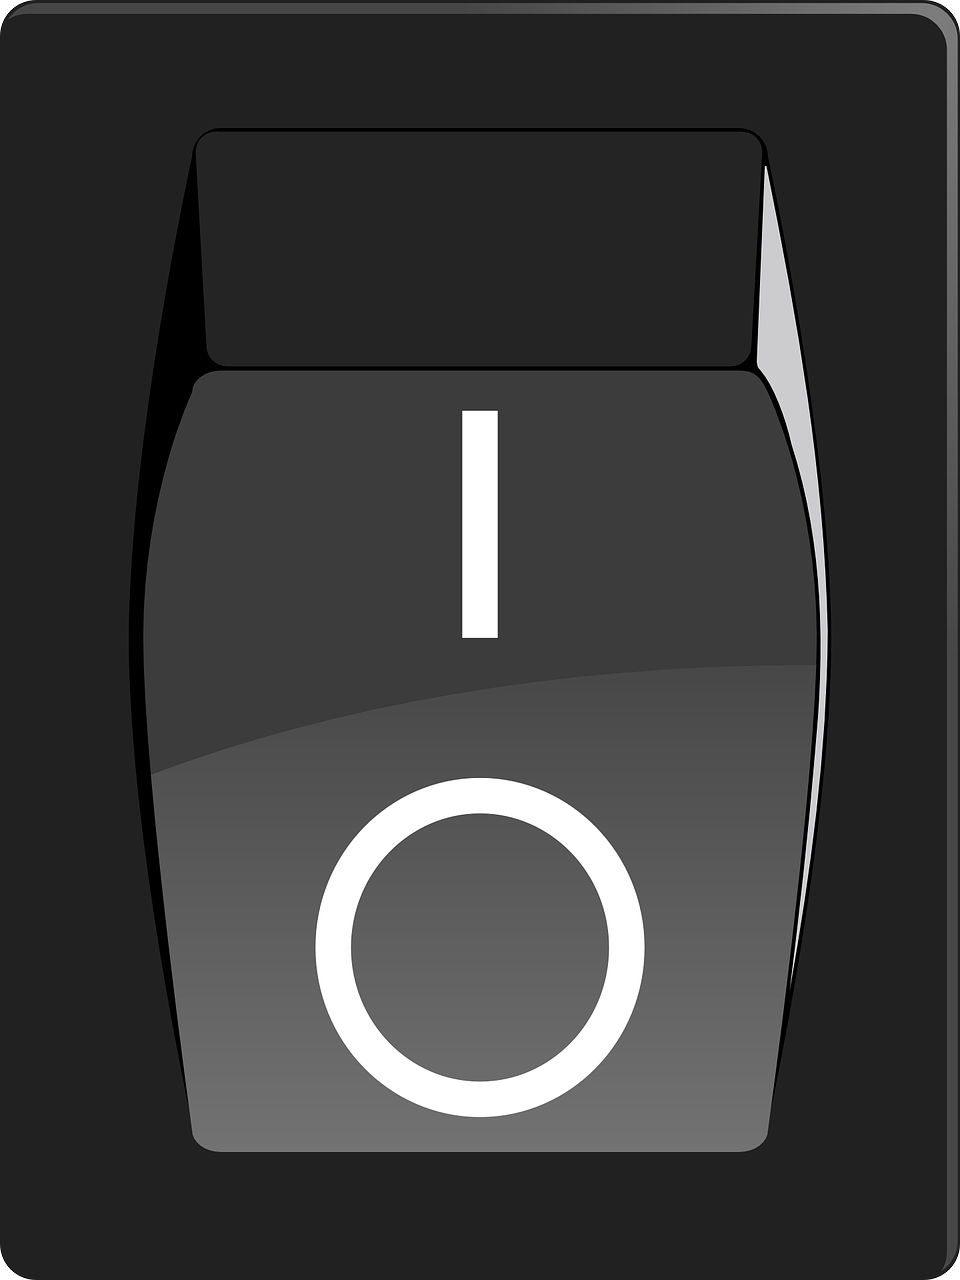 Switch,off,on,electric switch,free vector graphics - free photo from ...